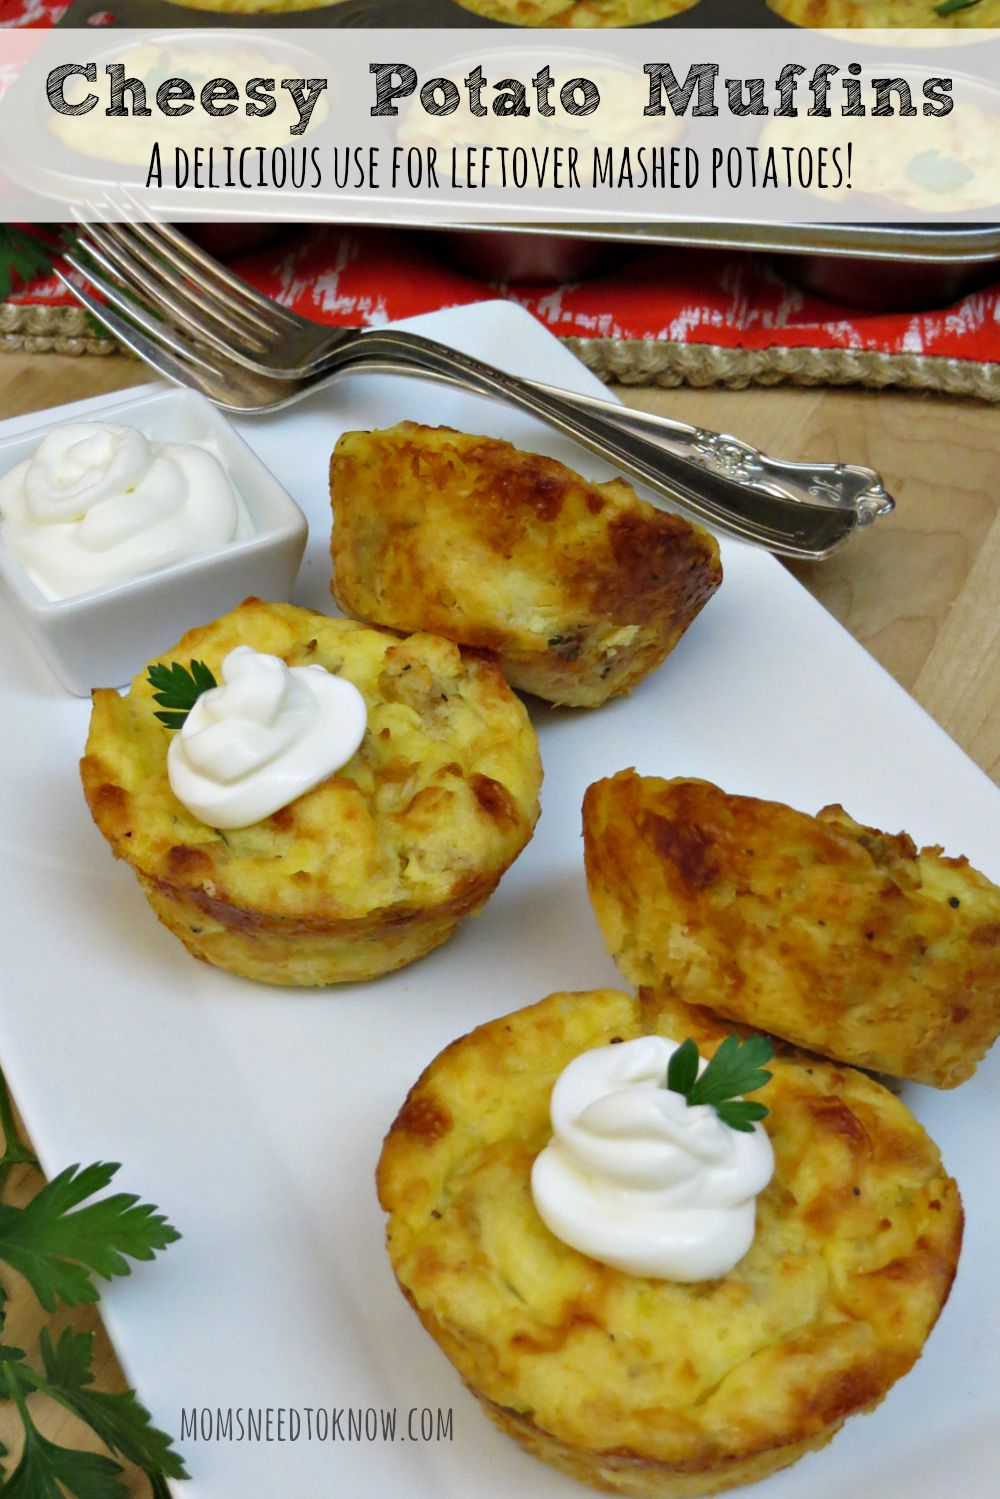 Cheesy Potato Muffins